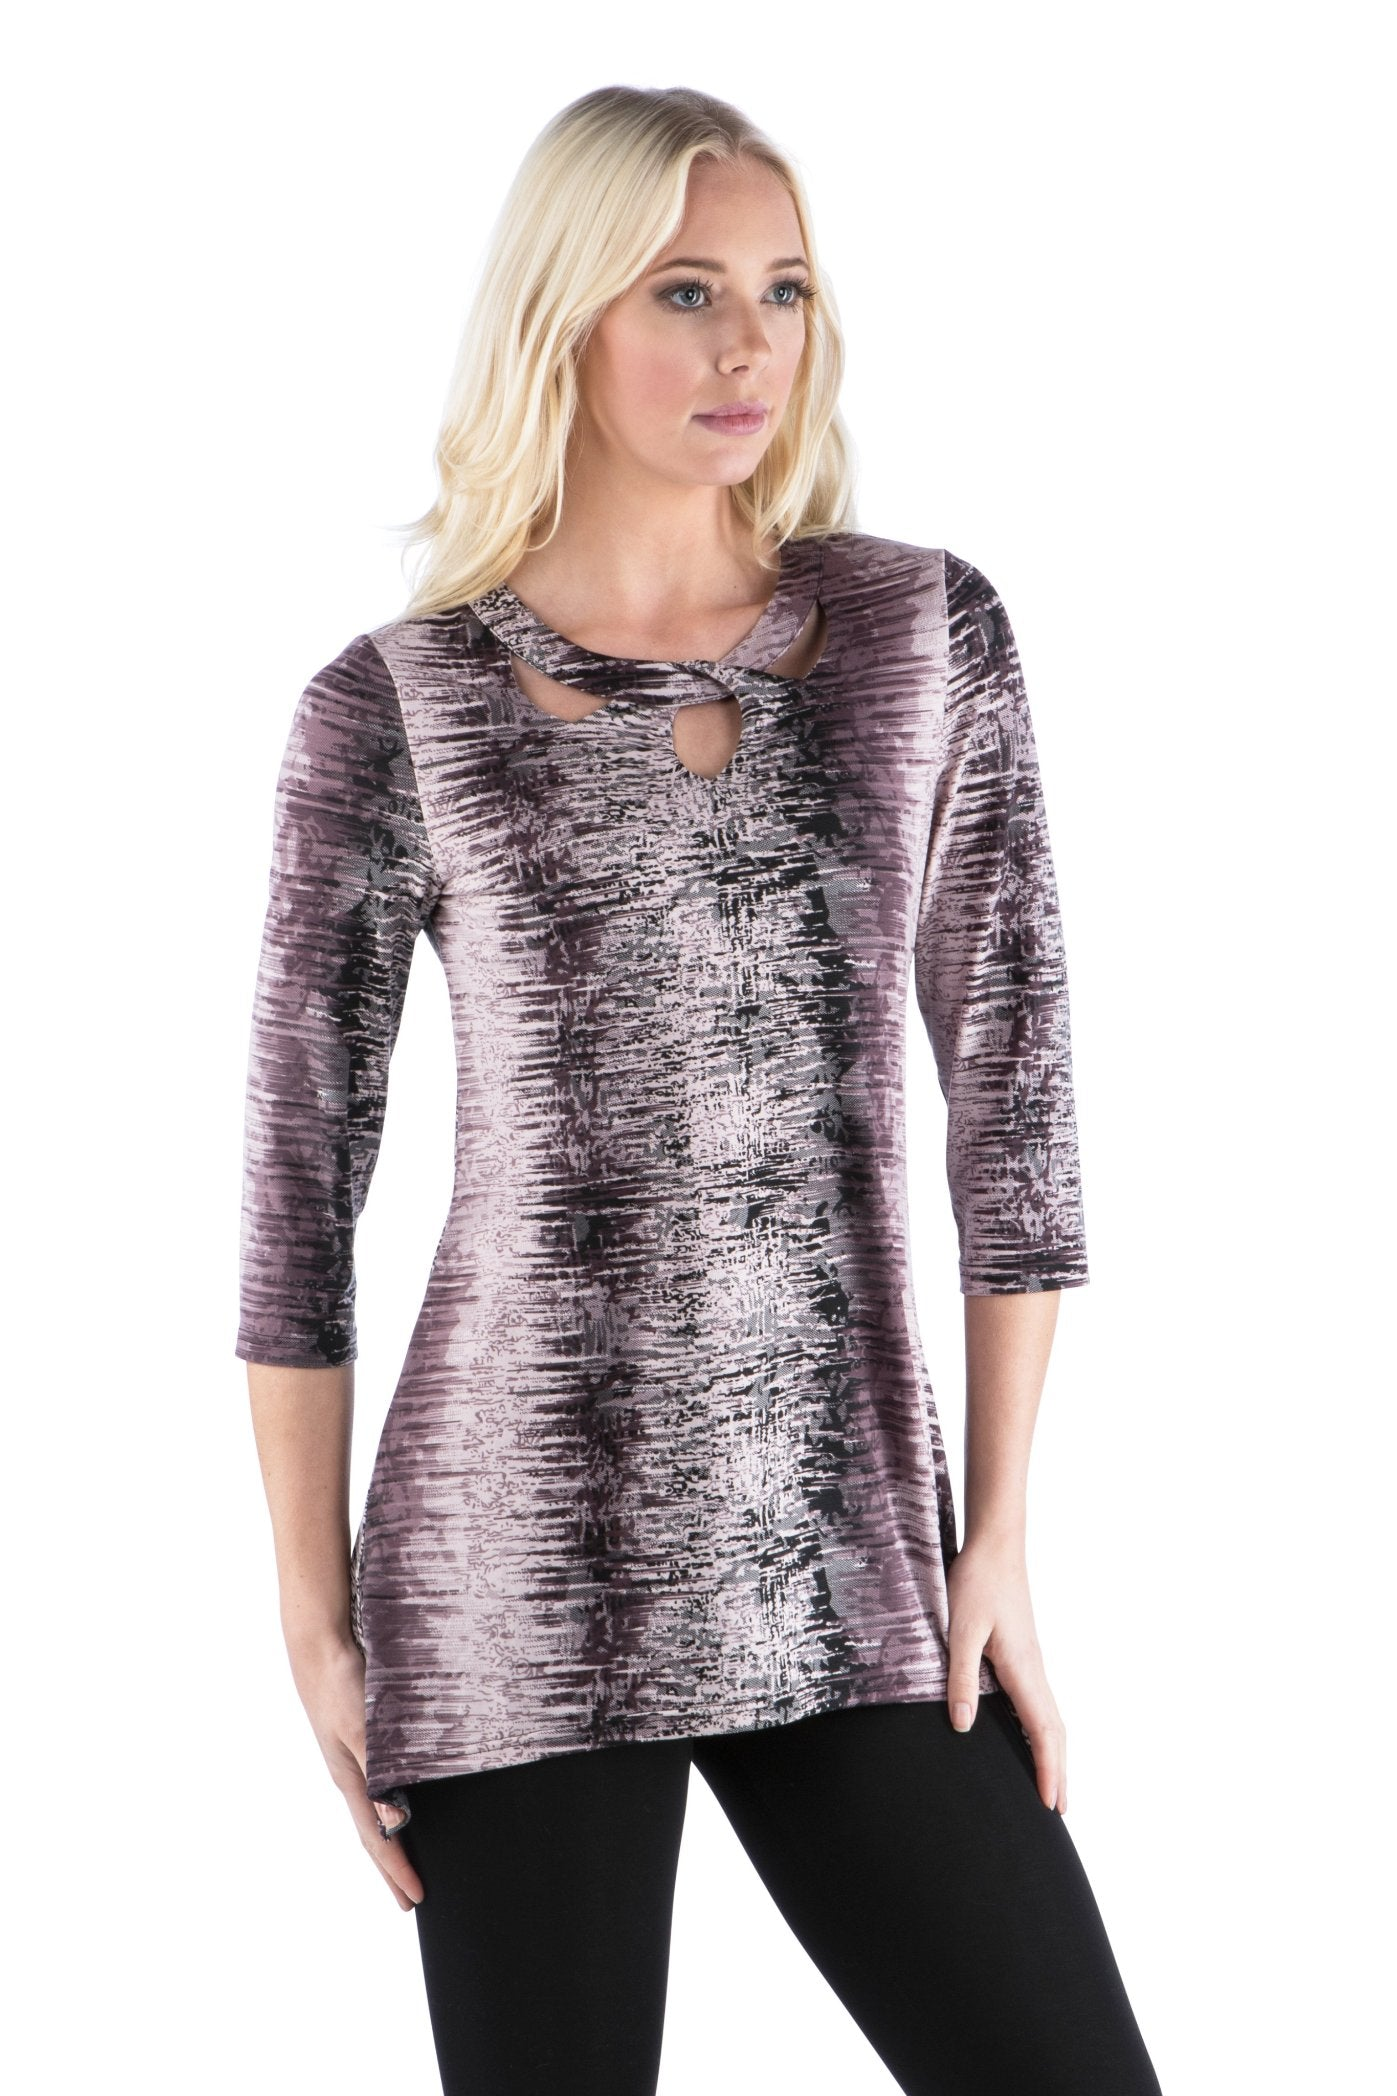 Keyhole Cut Out Neckline Printed Tunic with 3/4 Sleeves, Print Purple